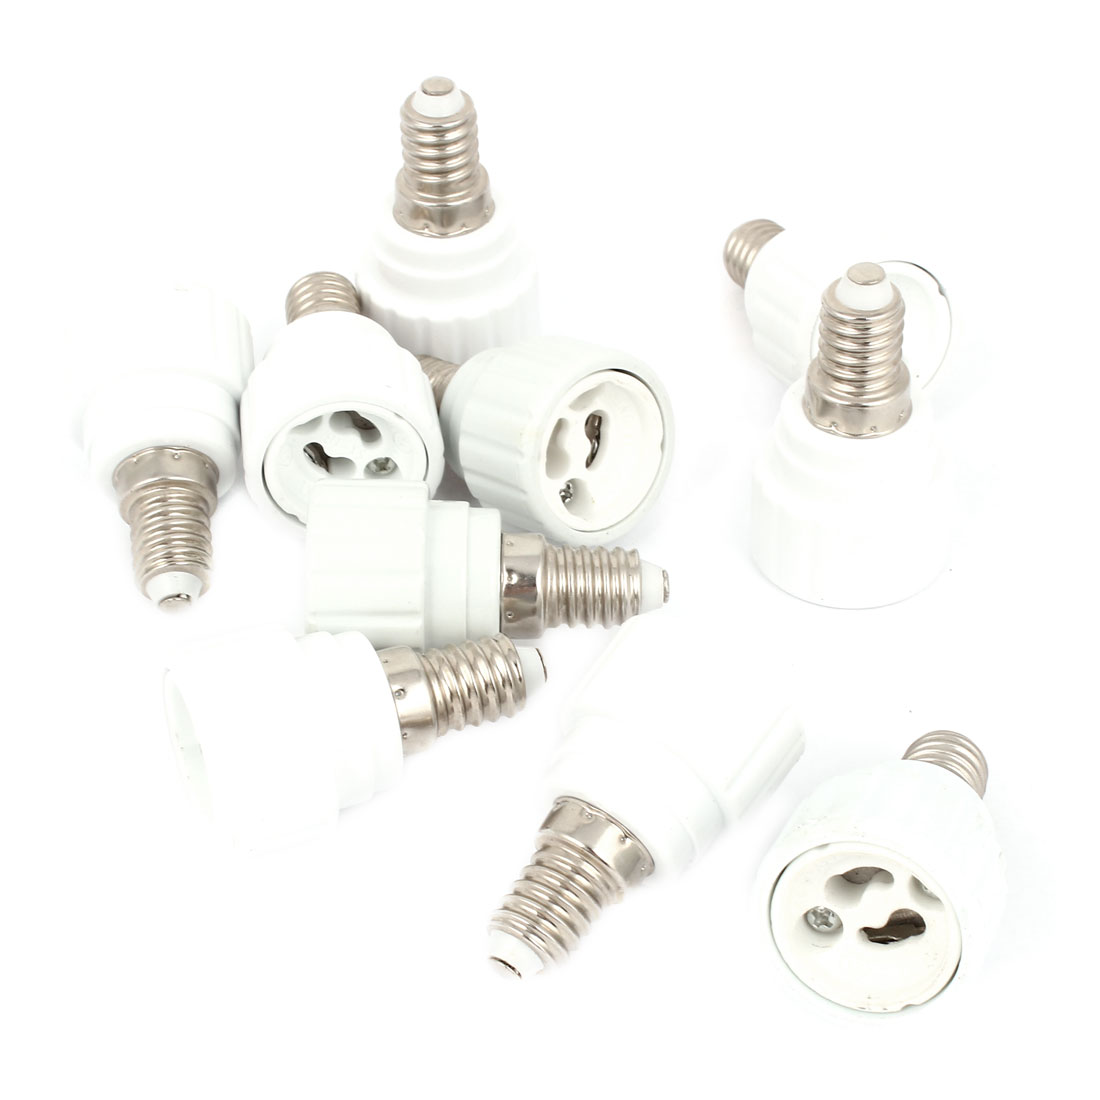 10Pcs Ceramic E14 to GU10 Base LED Halogen Light Lamp Bulb Adapter